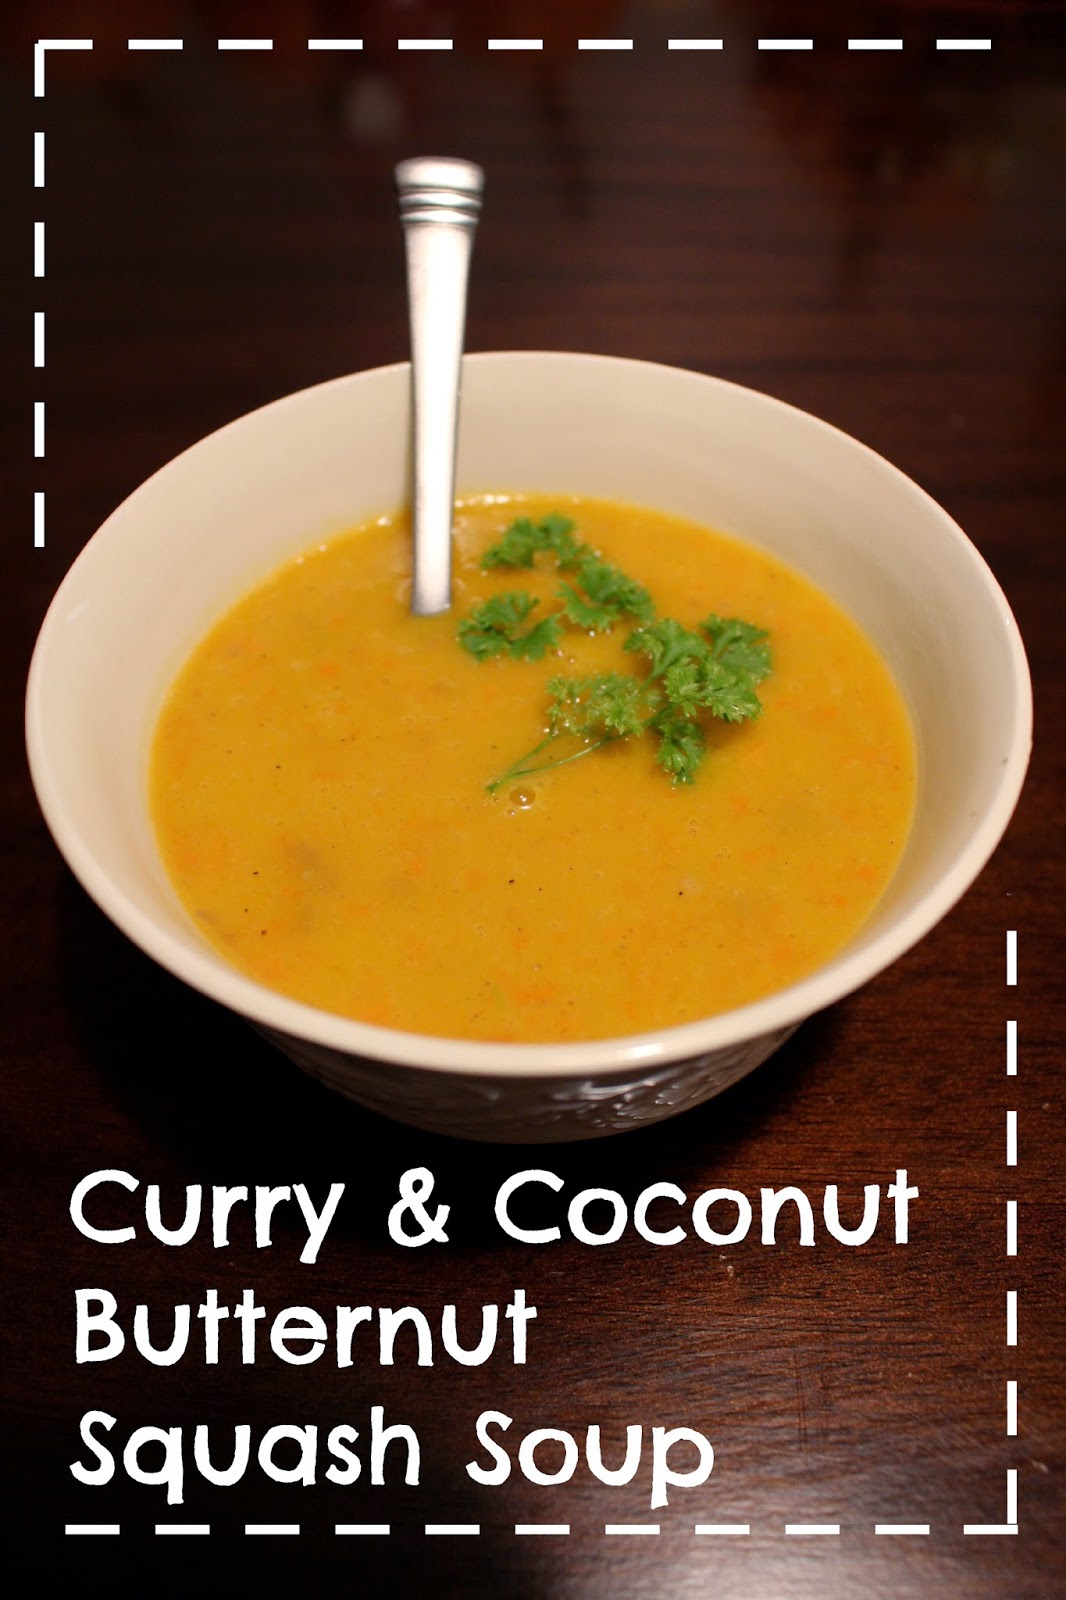 ... Ideas Are Really From Pinterest: Curry & Coconut Butternut Squash Soup